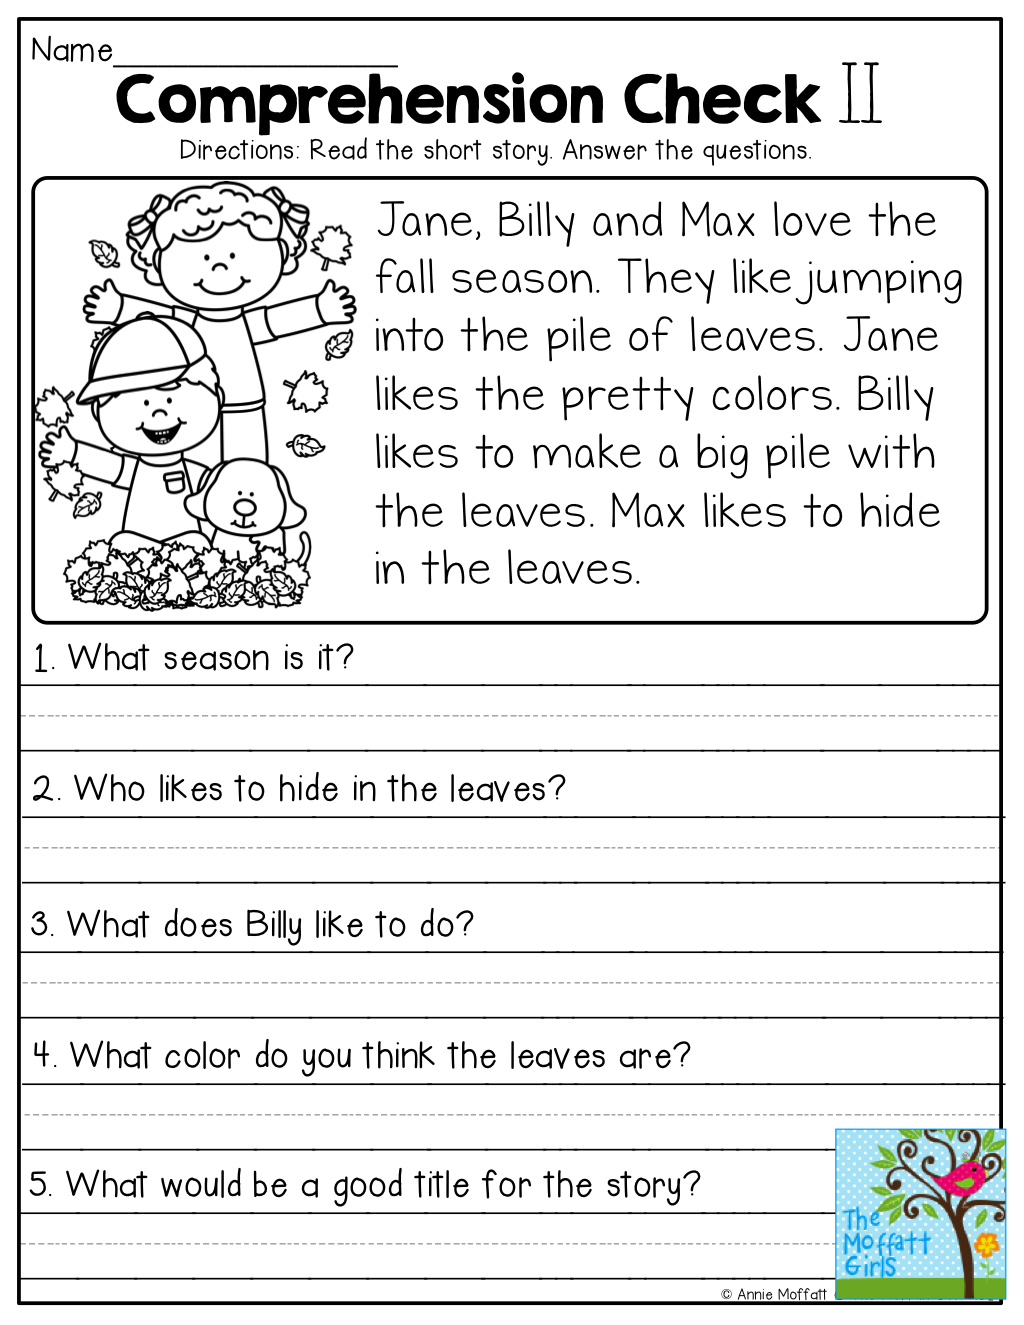 worksheet 1st Grade Reading Comprehension Worksheets Free comprehension checks and so many more useful printables best of read the simple story answer questions tons great to help with grade level skills